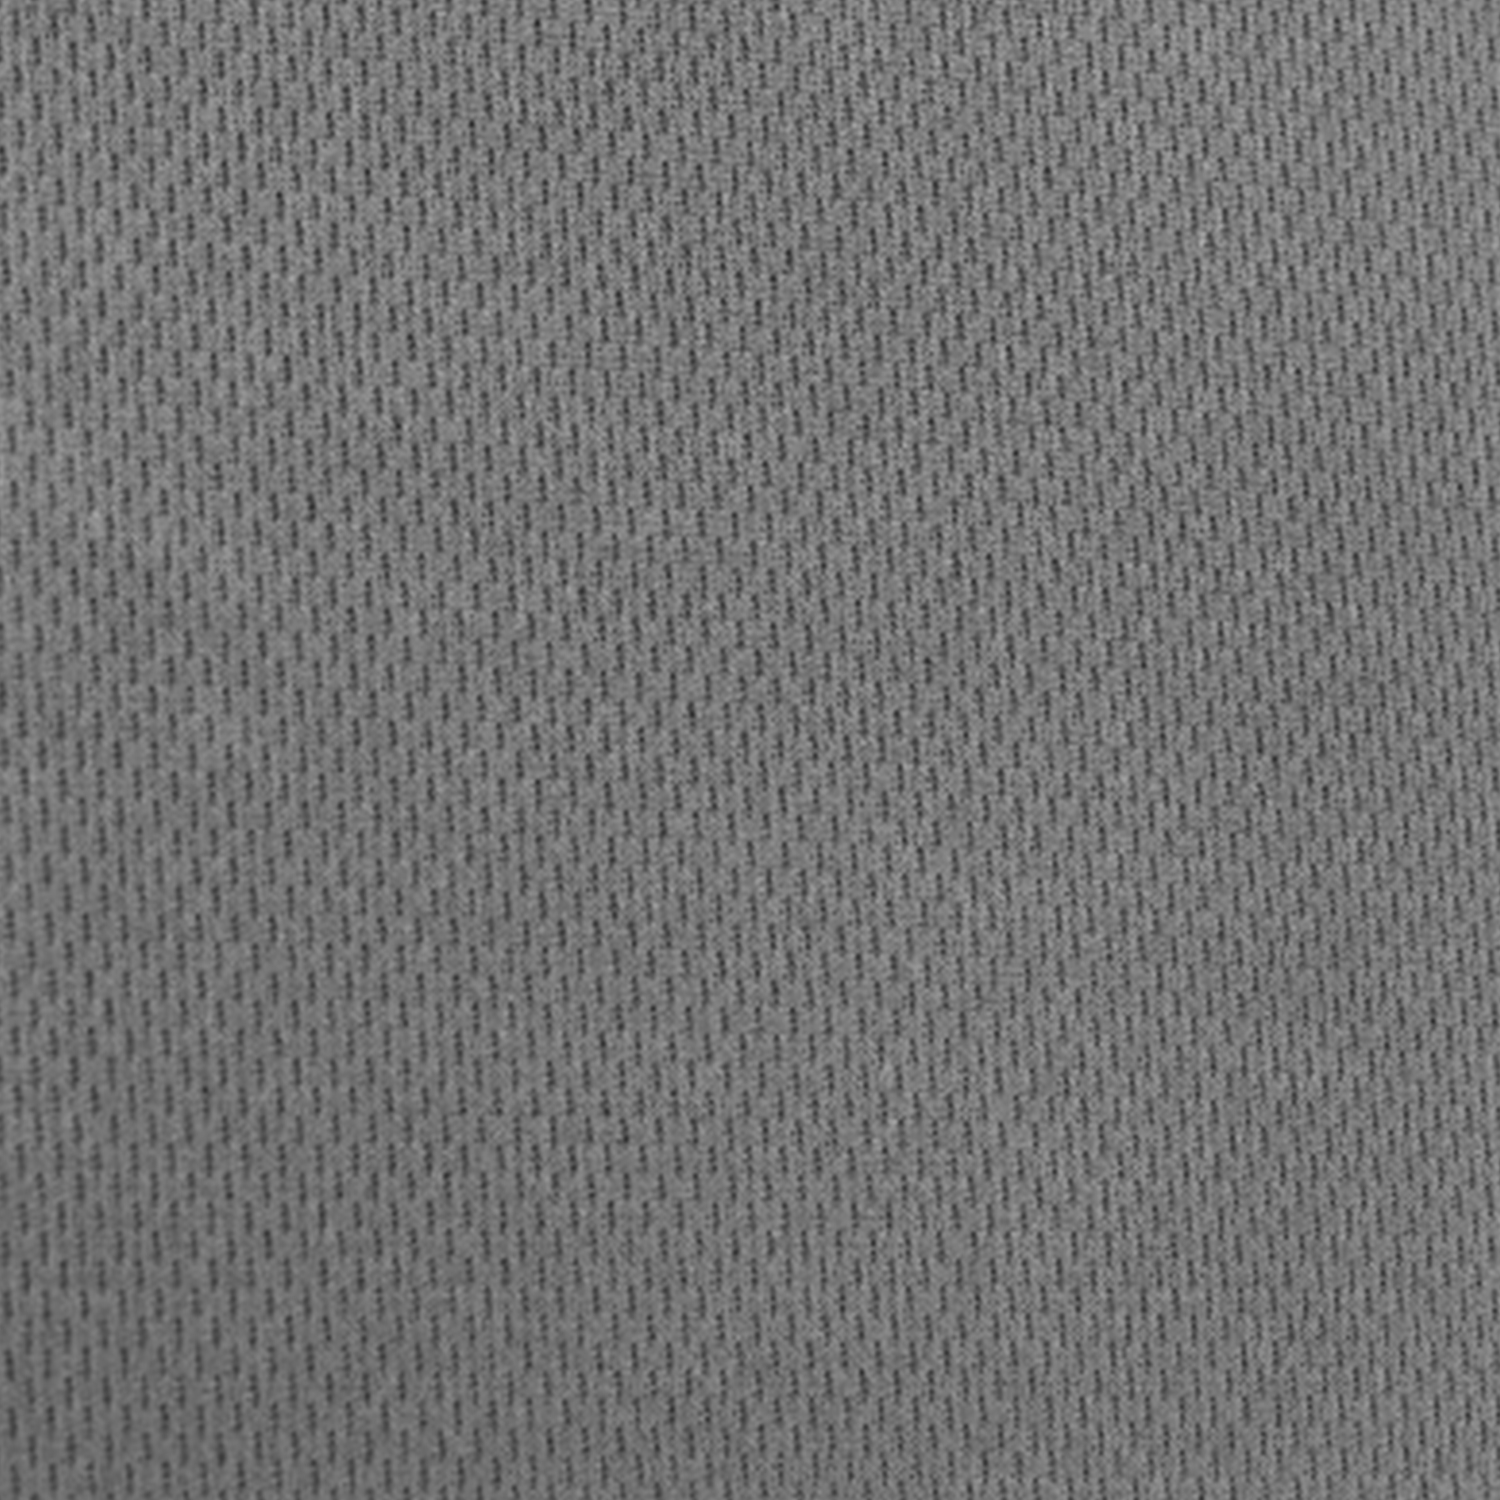 Charcoal Flat Back Dimple Mesh Fabric